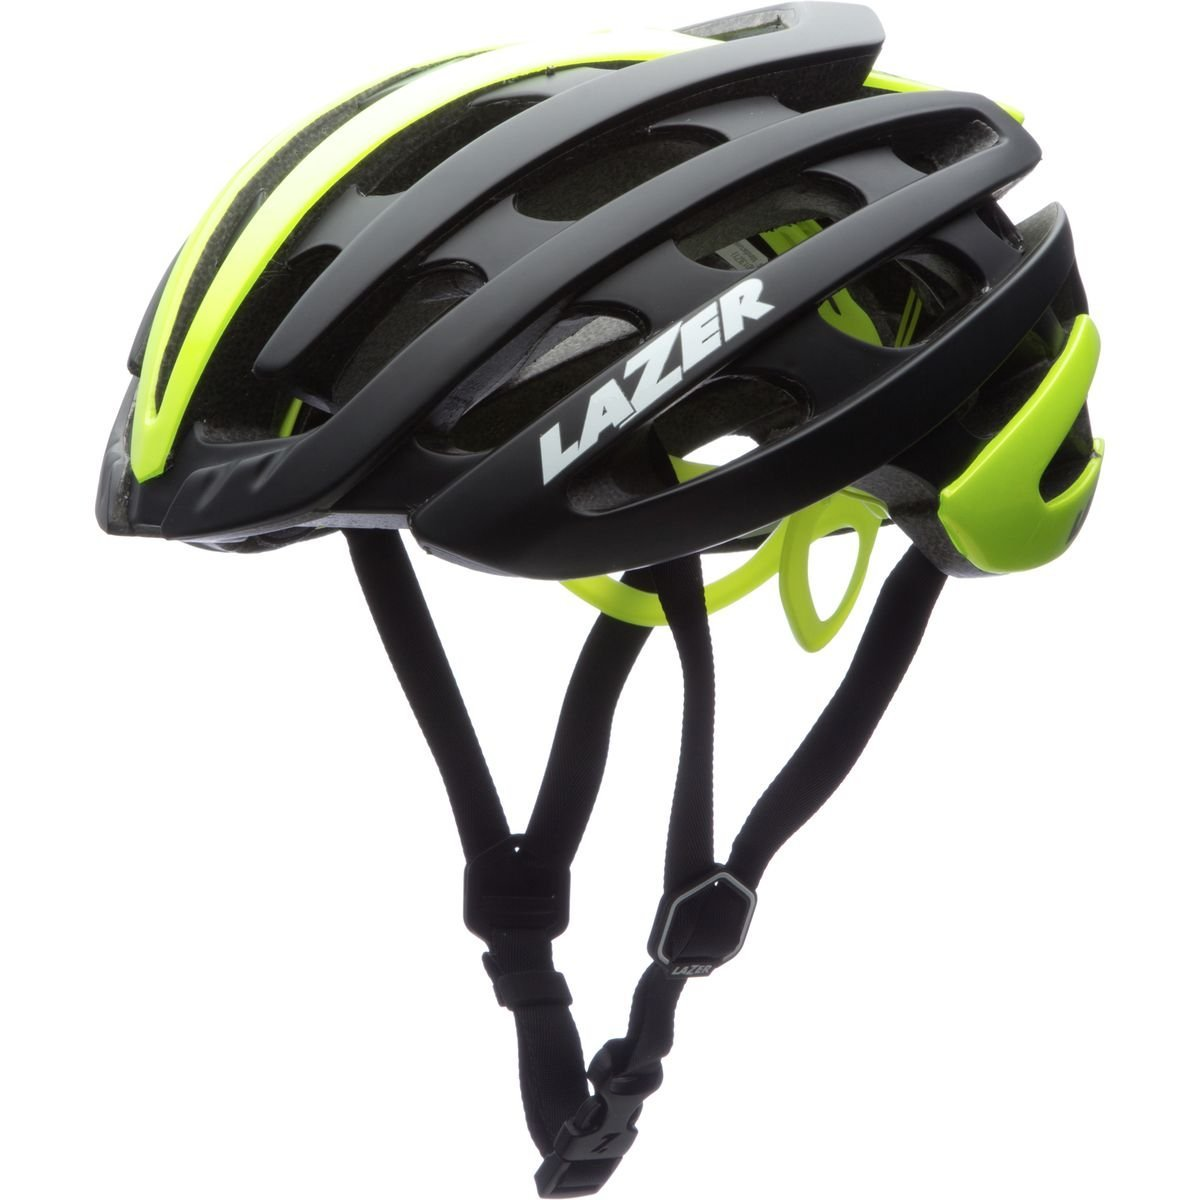 Large Lazer Bicycle Helmets